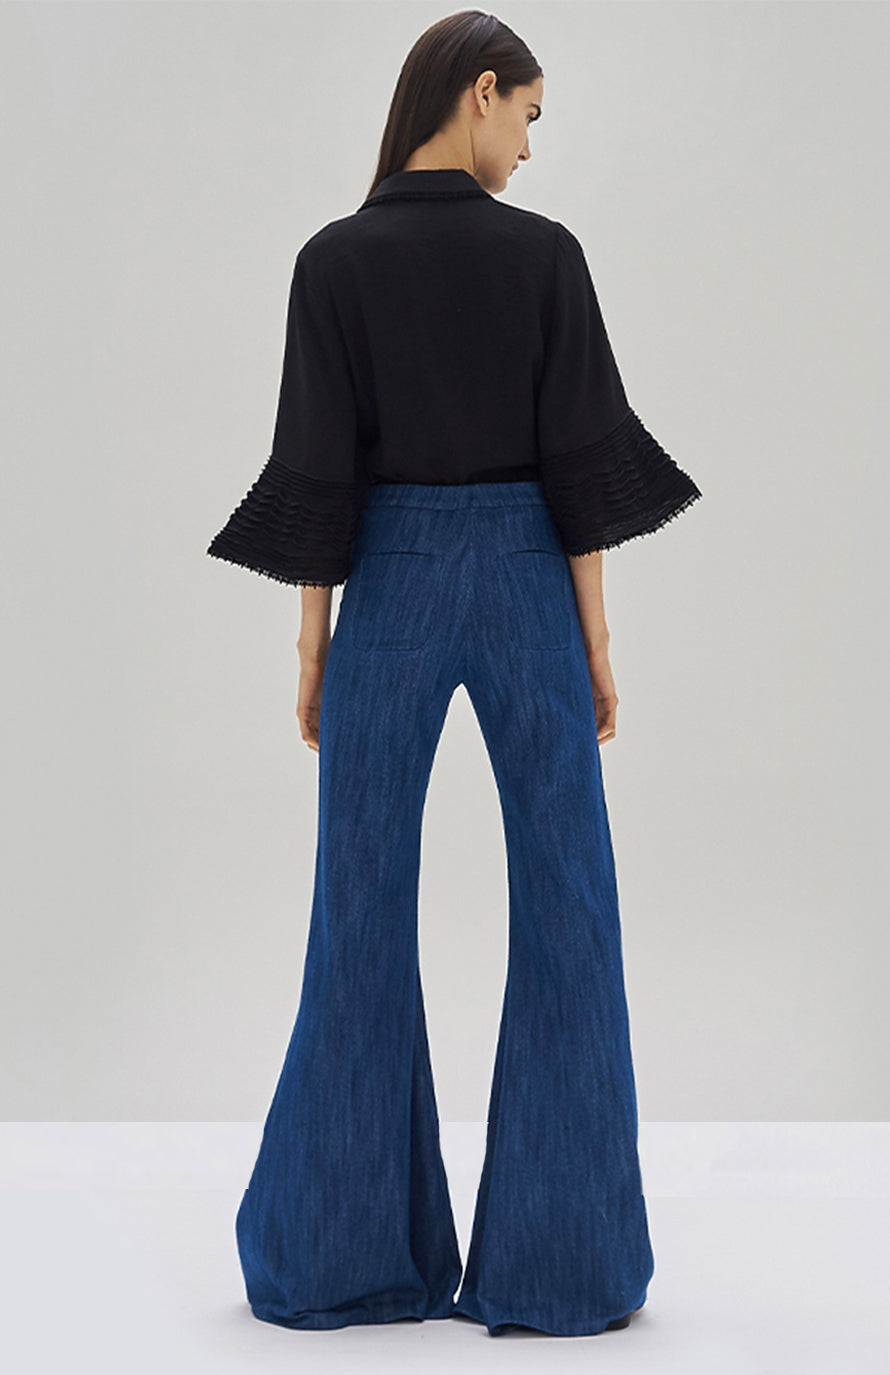 Alexis Tylar Top Black and Carlisle Pant - Rear View